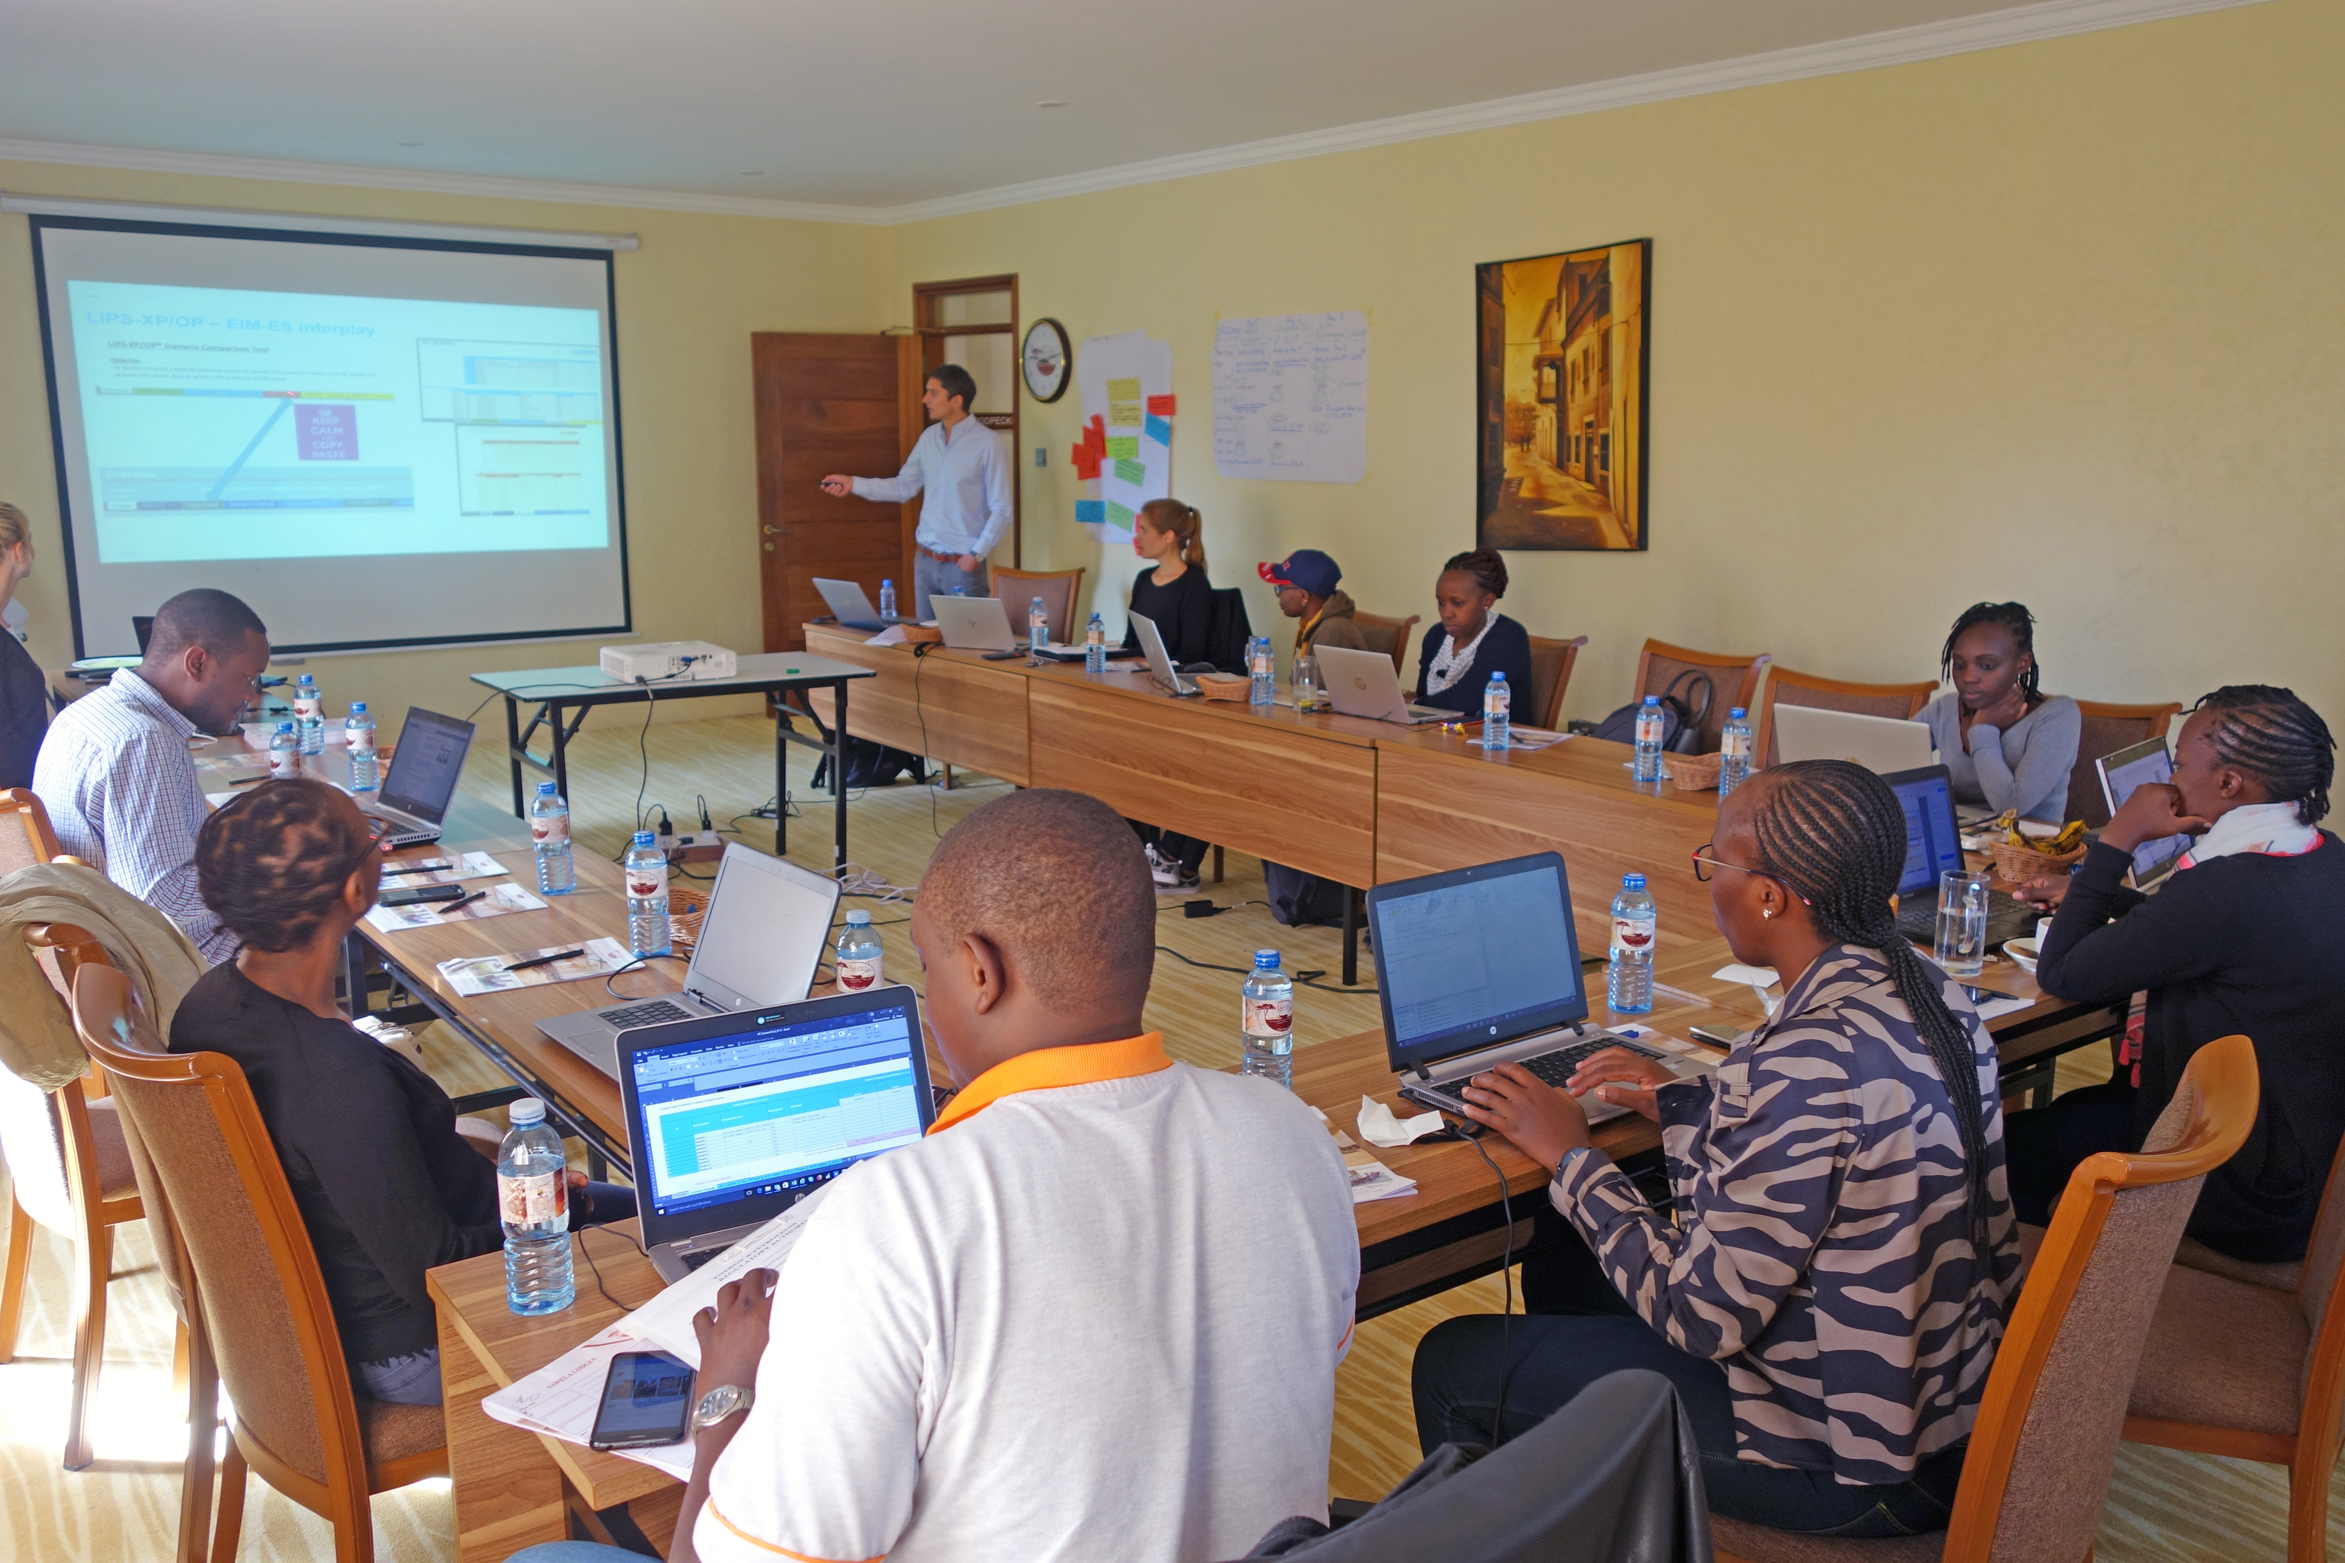 Tractebel training for energy supply planners in Kenya